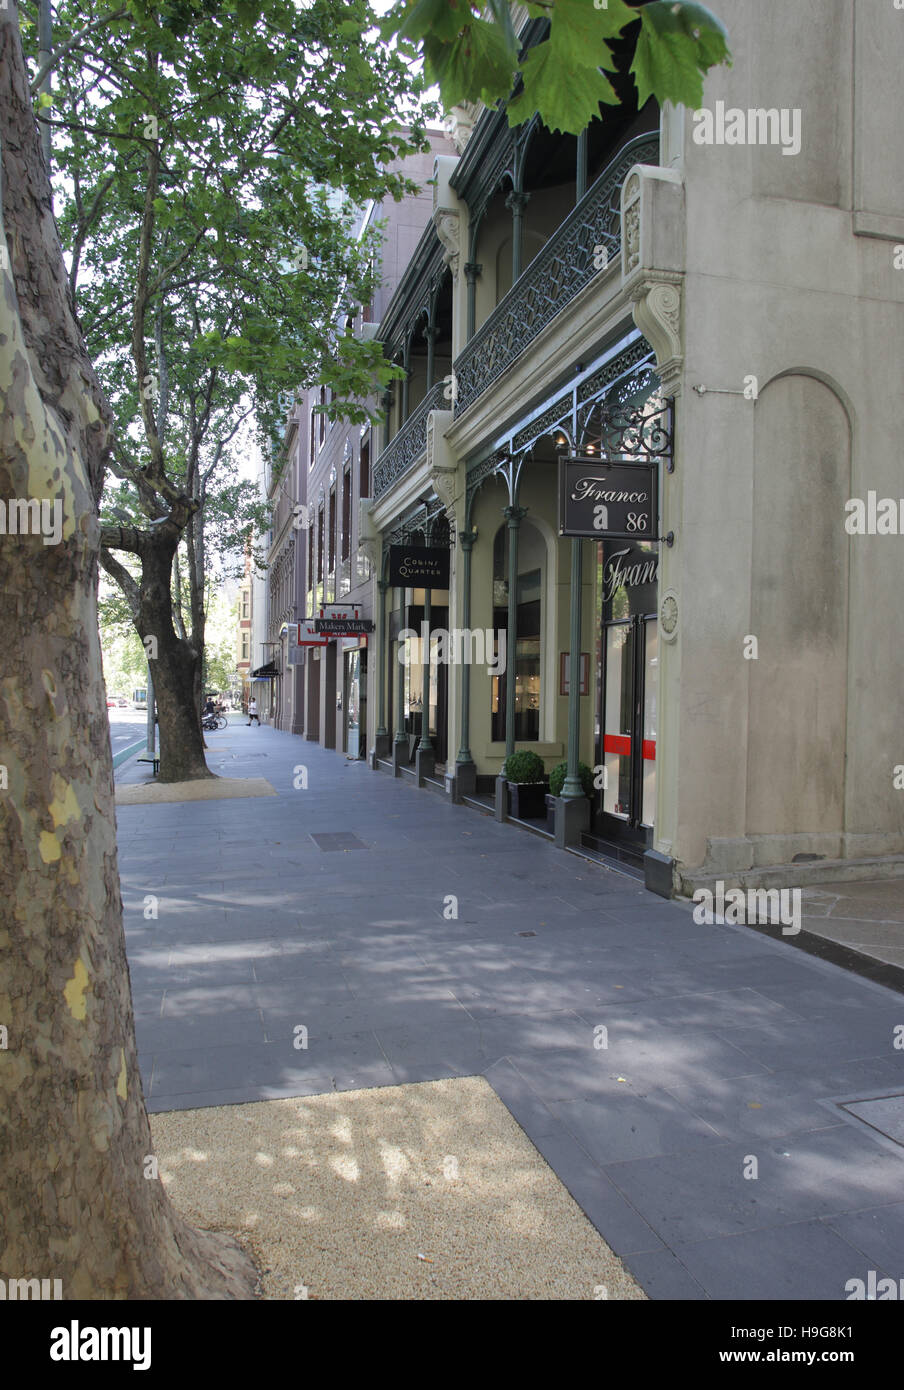 Collins Street, upmarket shopping street with Victorian buildings, Melbourne, Victoria, Australia - Stock Image